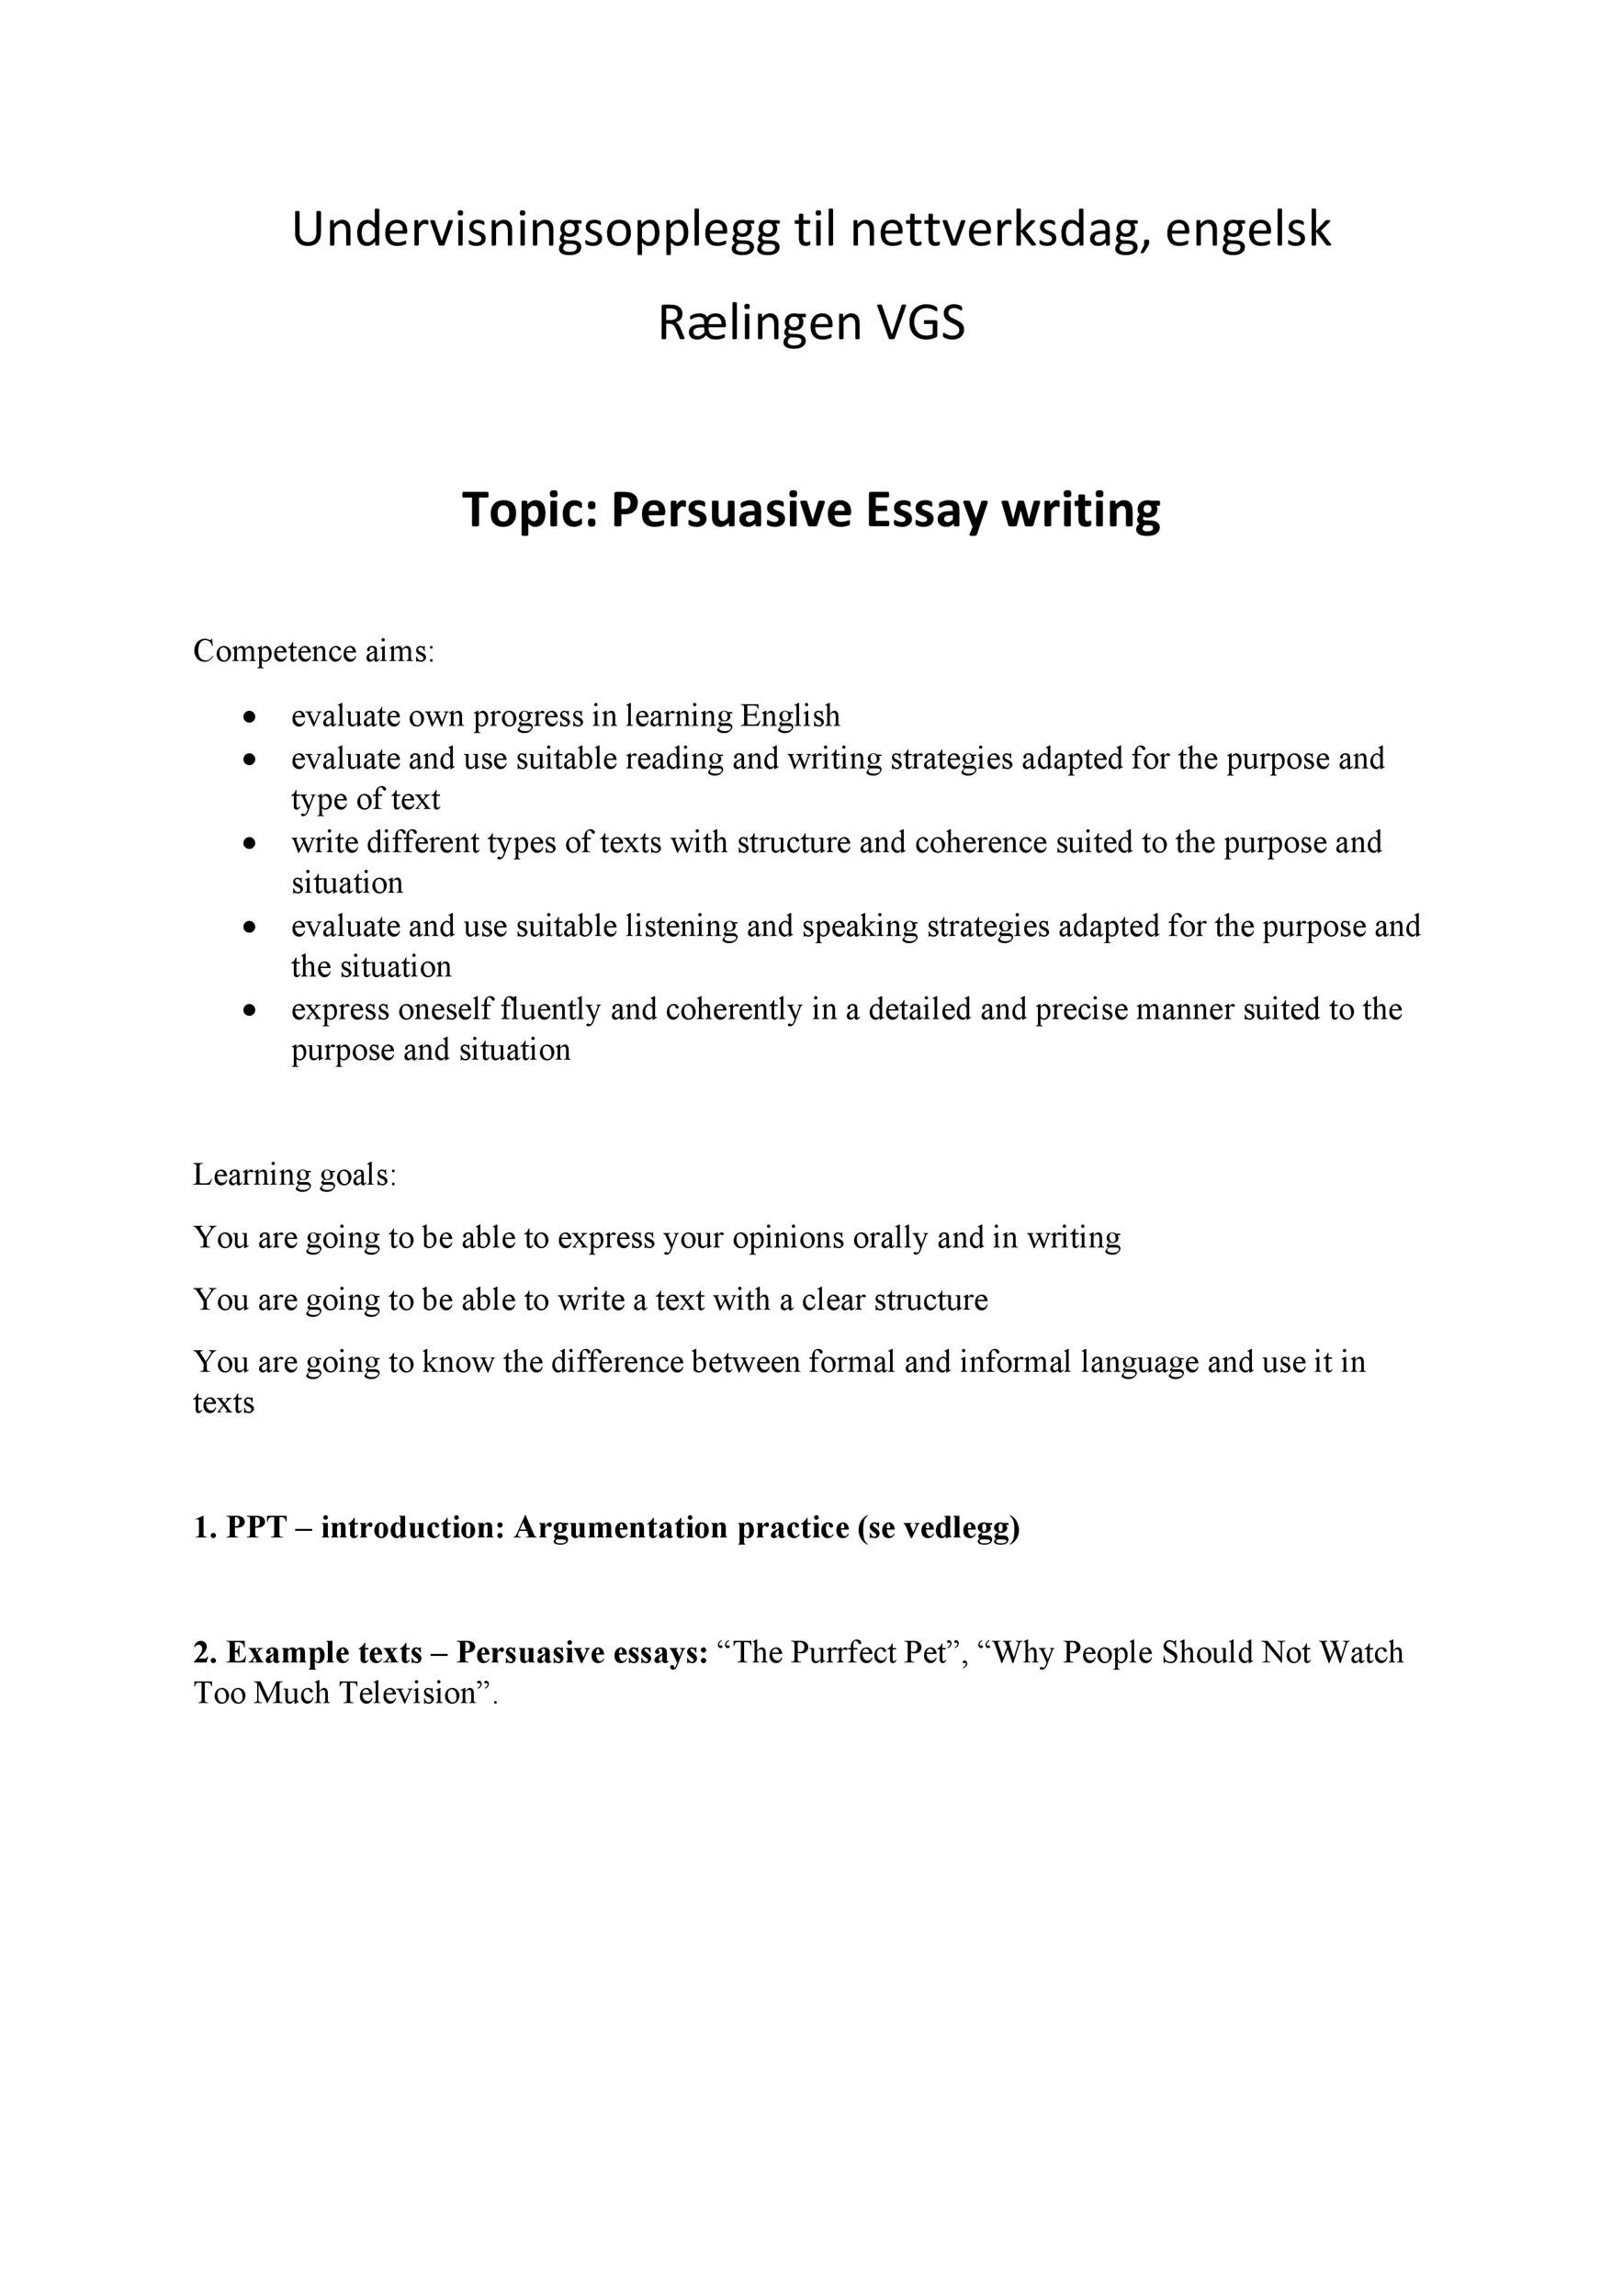 Essay is persuasive thesis